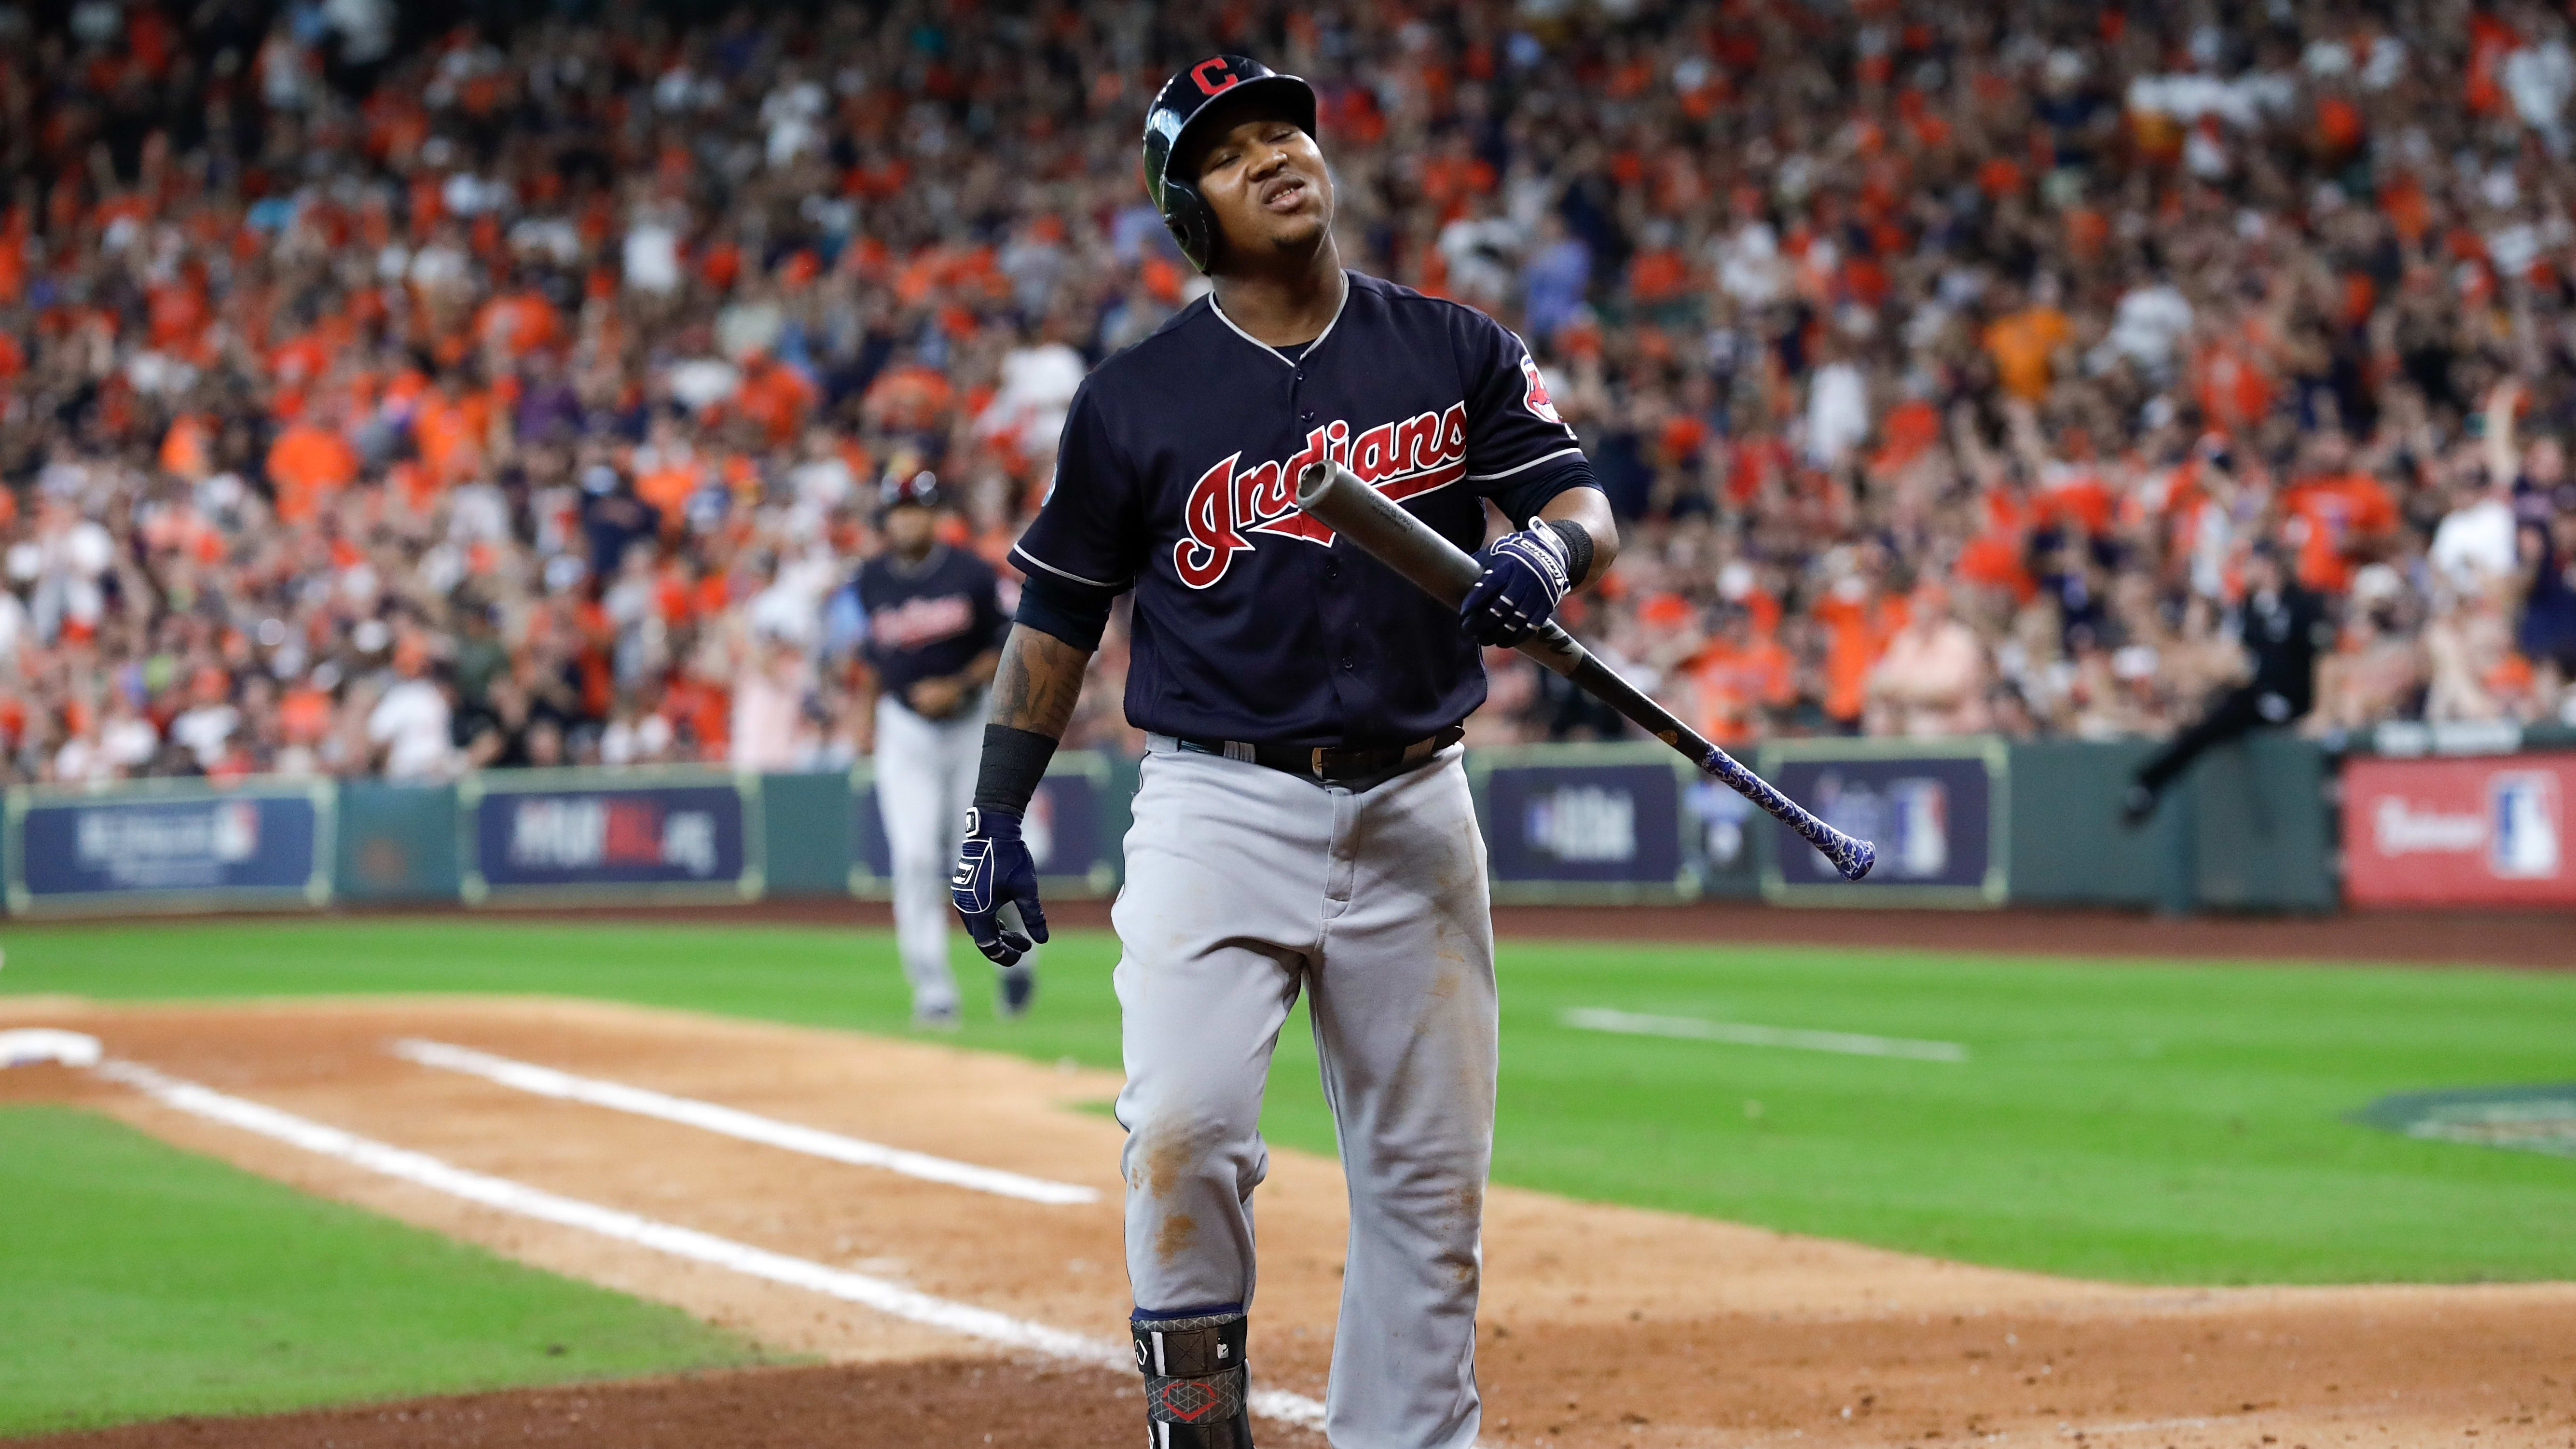 HOUSTON, TX - OCTOBER 06:  Jose Ramirez #11 of the Cleveland Indians reacts after a strikeout against the Houston Astros during Game Two of the American League Division Series at Minute Maid Park on October 6, 2018 in Houston, Texas.  (Photo by Tim Warner/Getty Images)